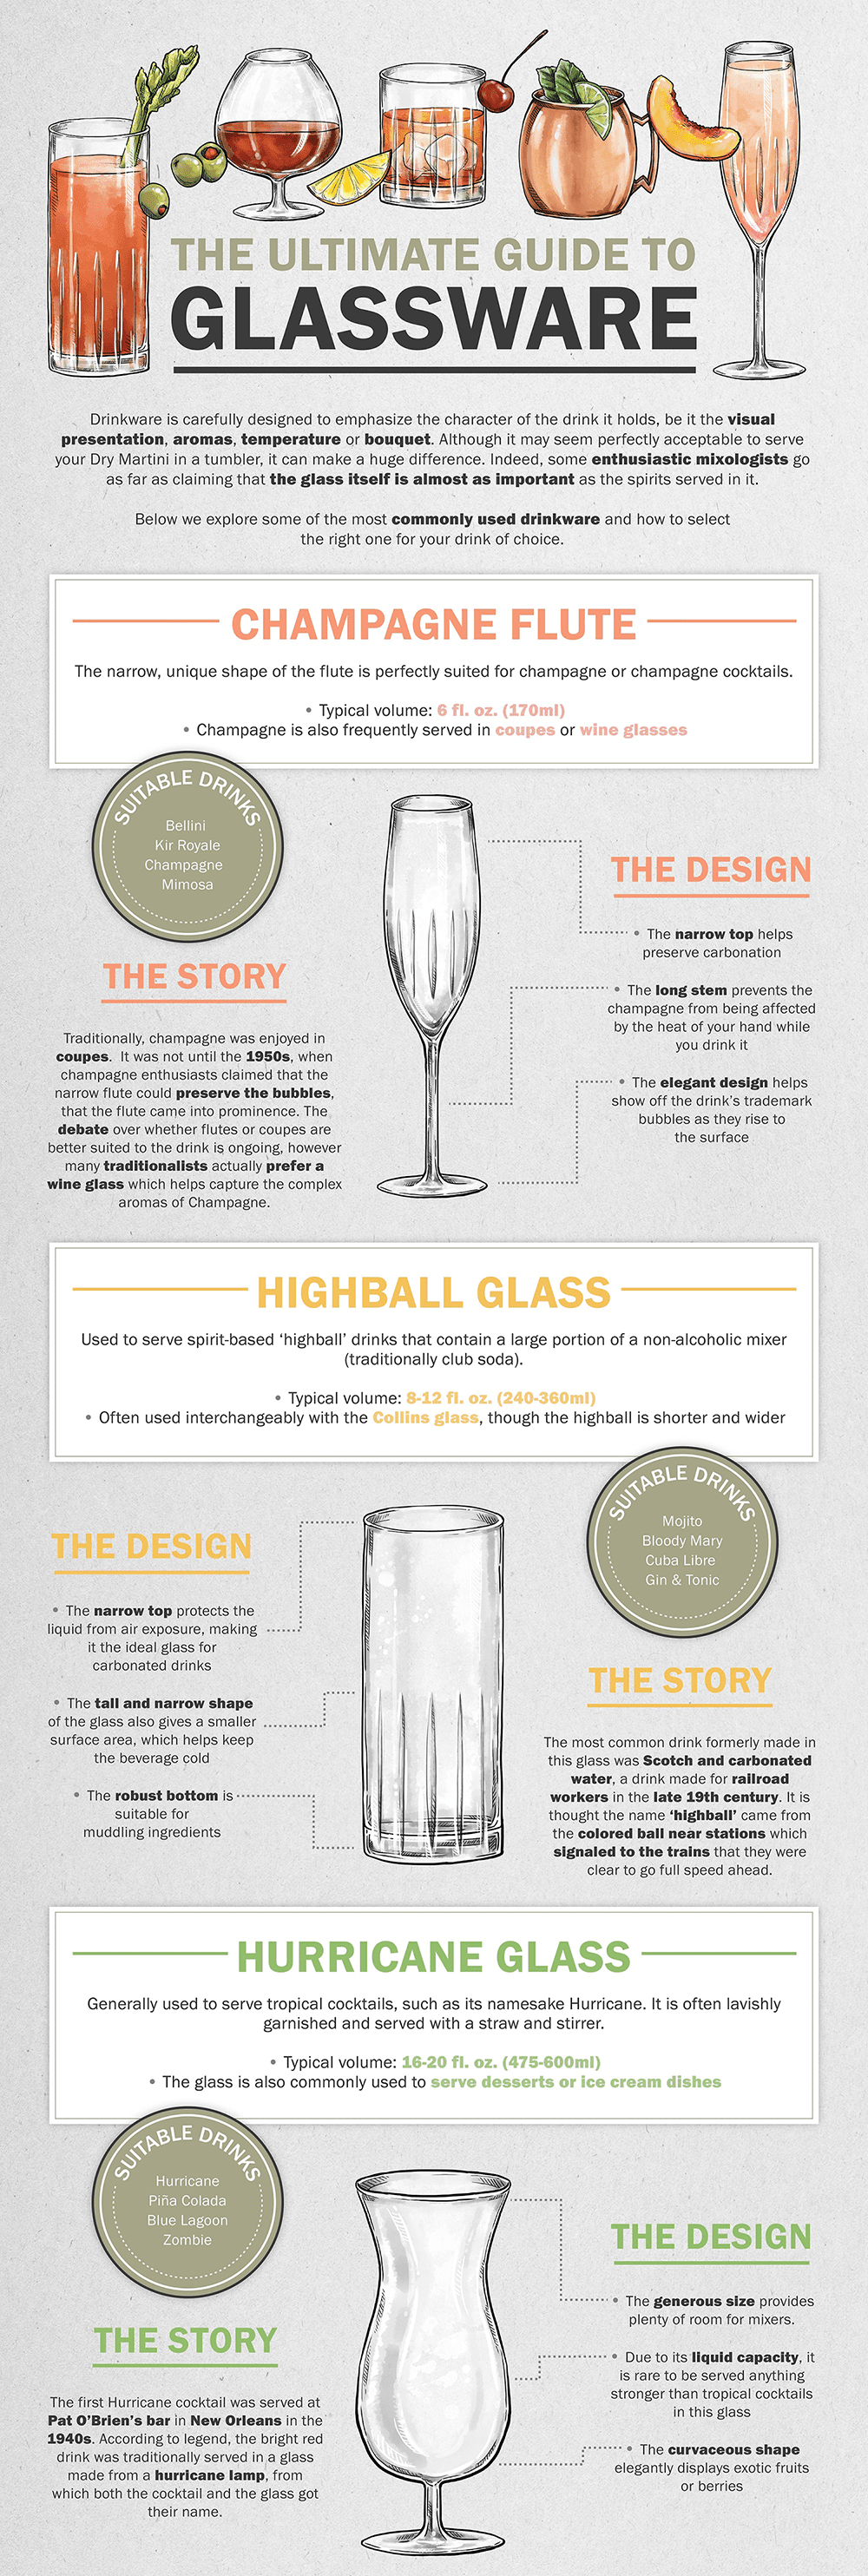 The Ultimate Guide to Glassware by Fairmont